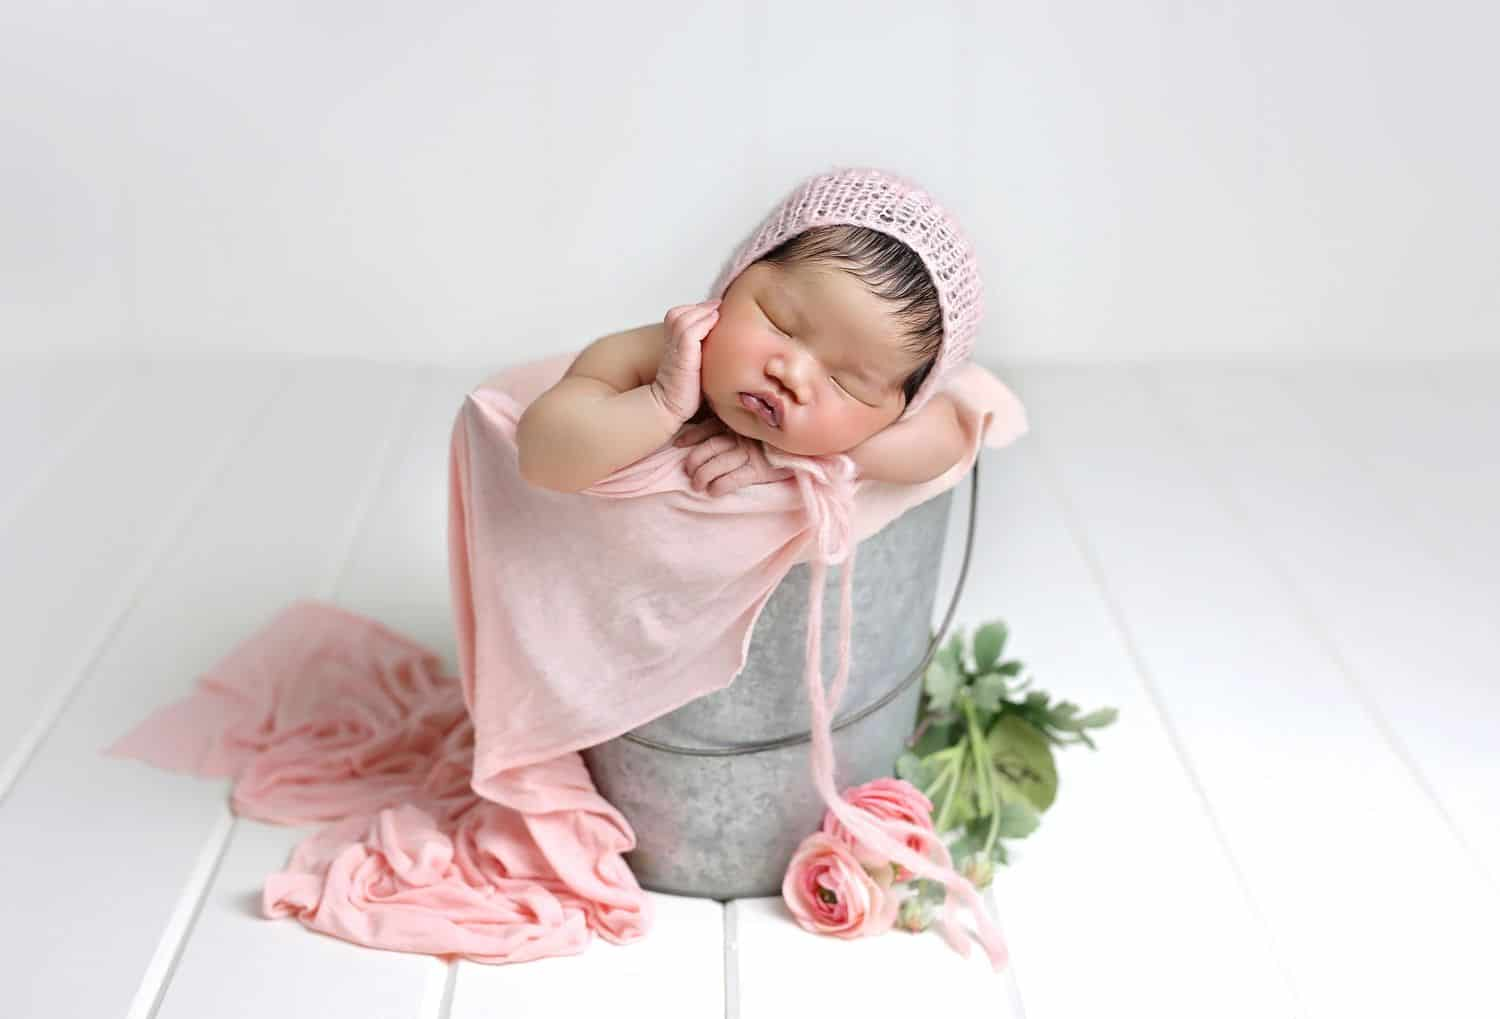 How To Attract New Clients In 3 Bold Business Moves: Baby in a bucket by Cassie Clayshulte